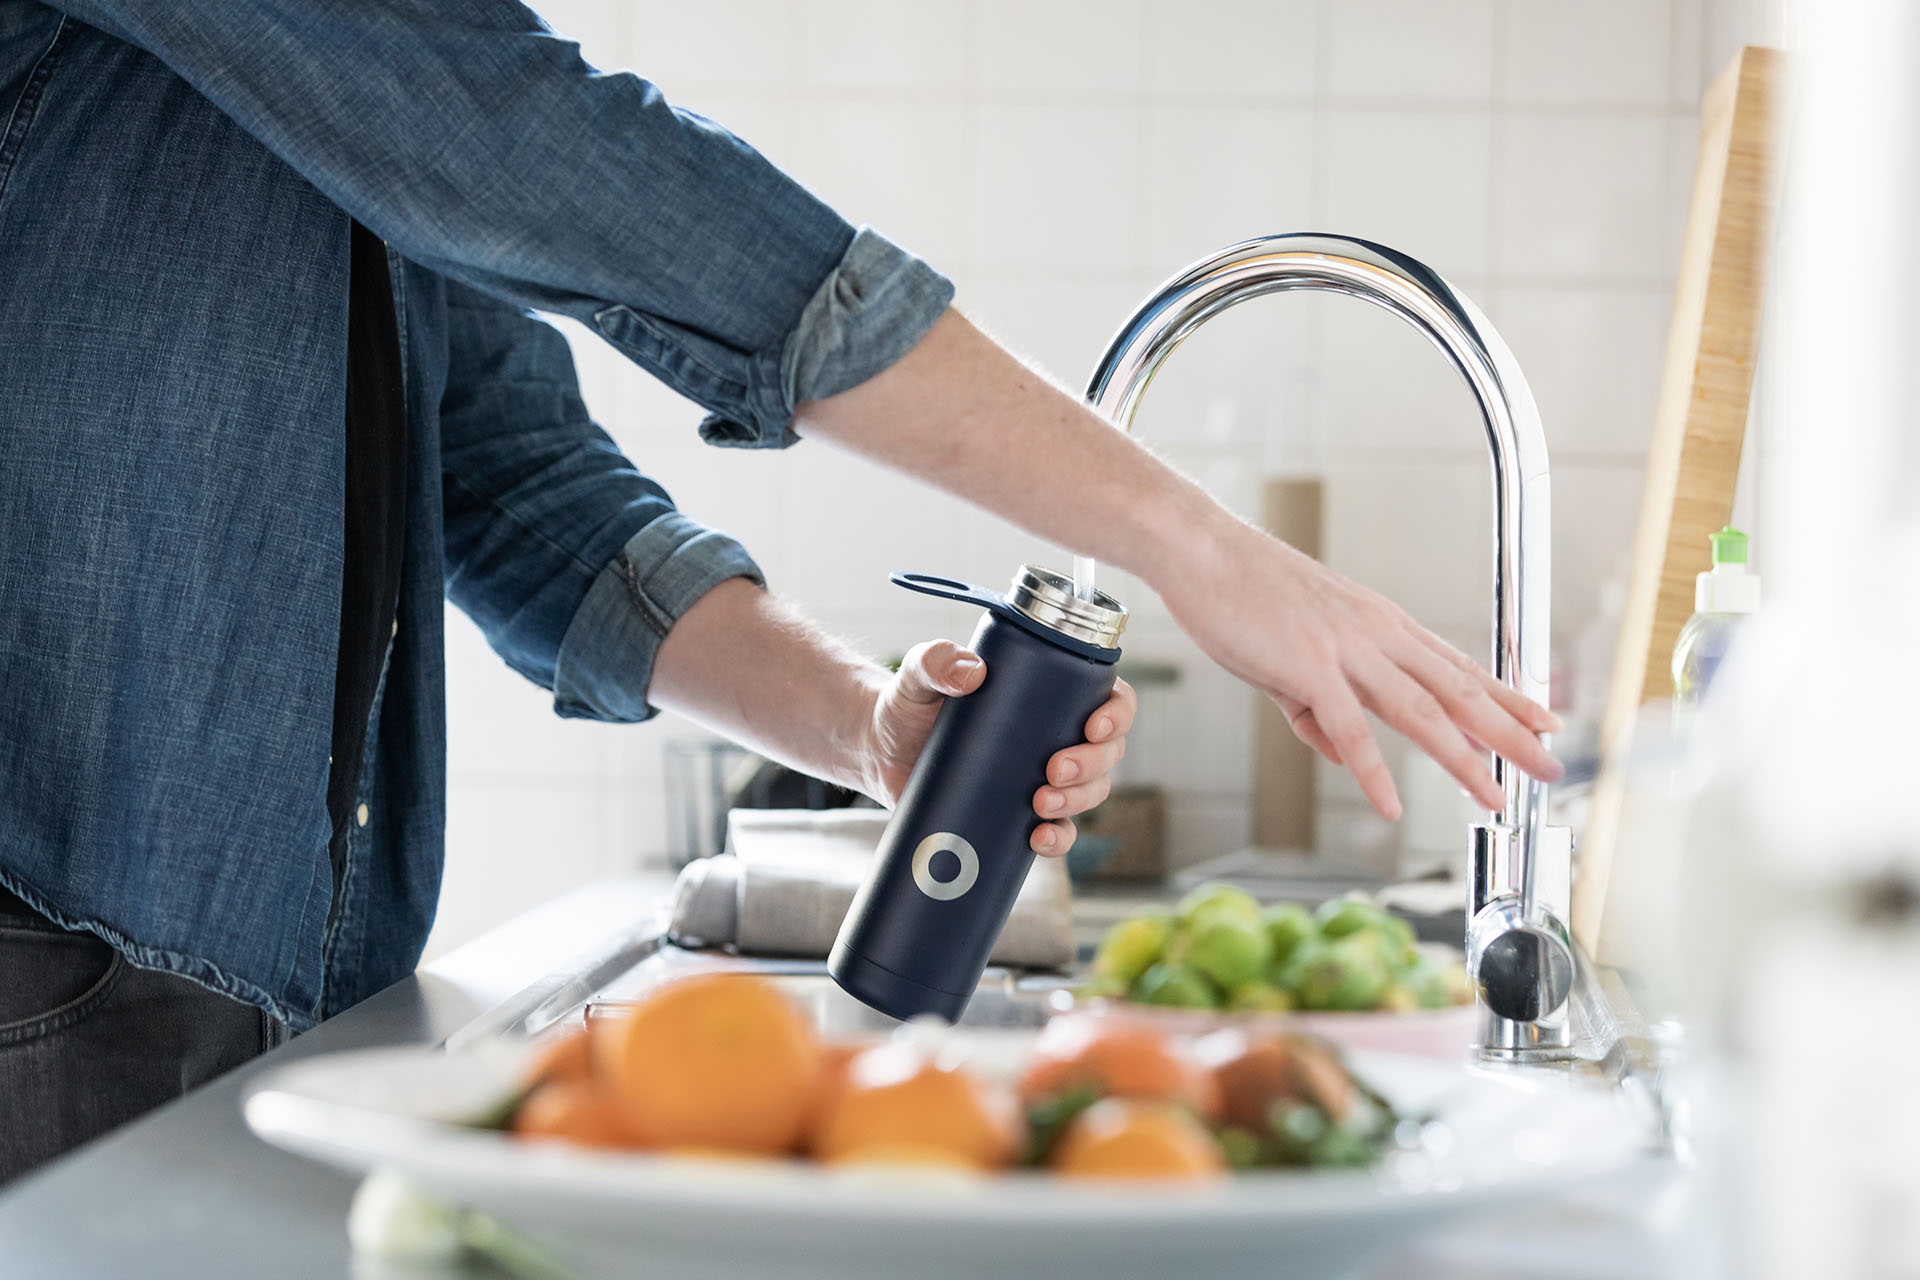 Do you need a water softener with reverse osmosis